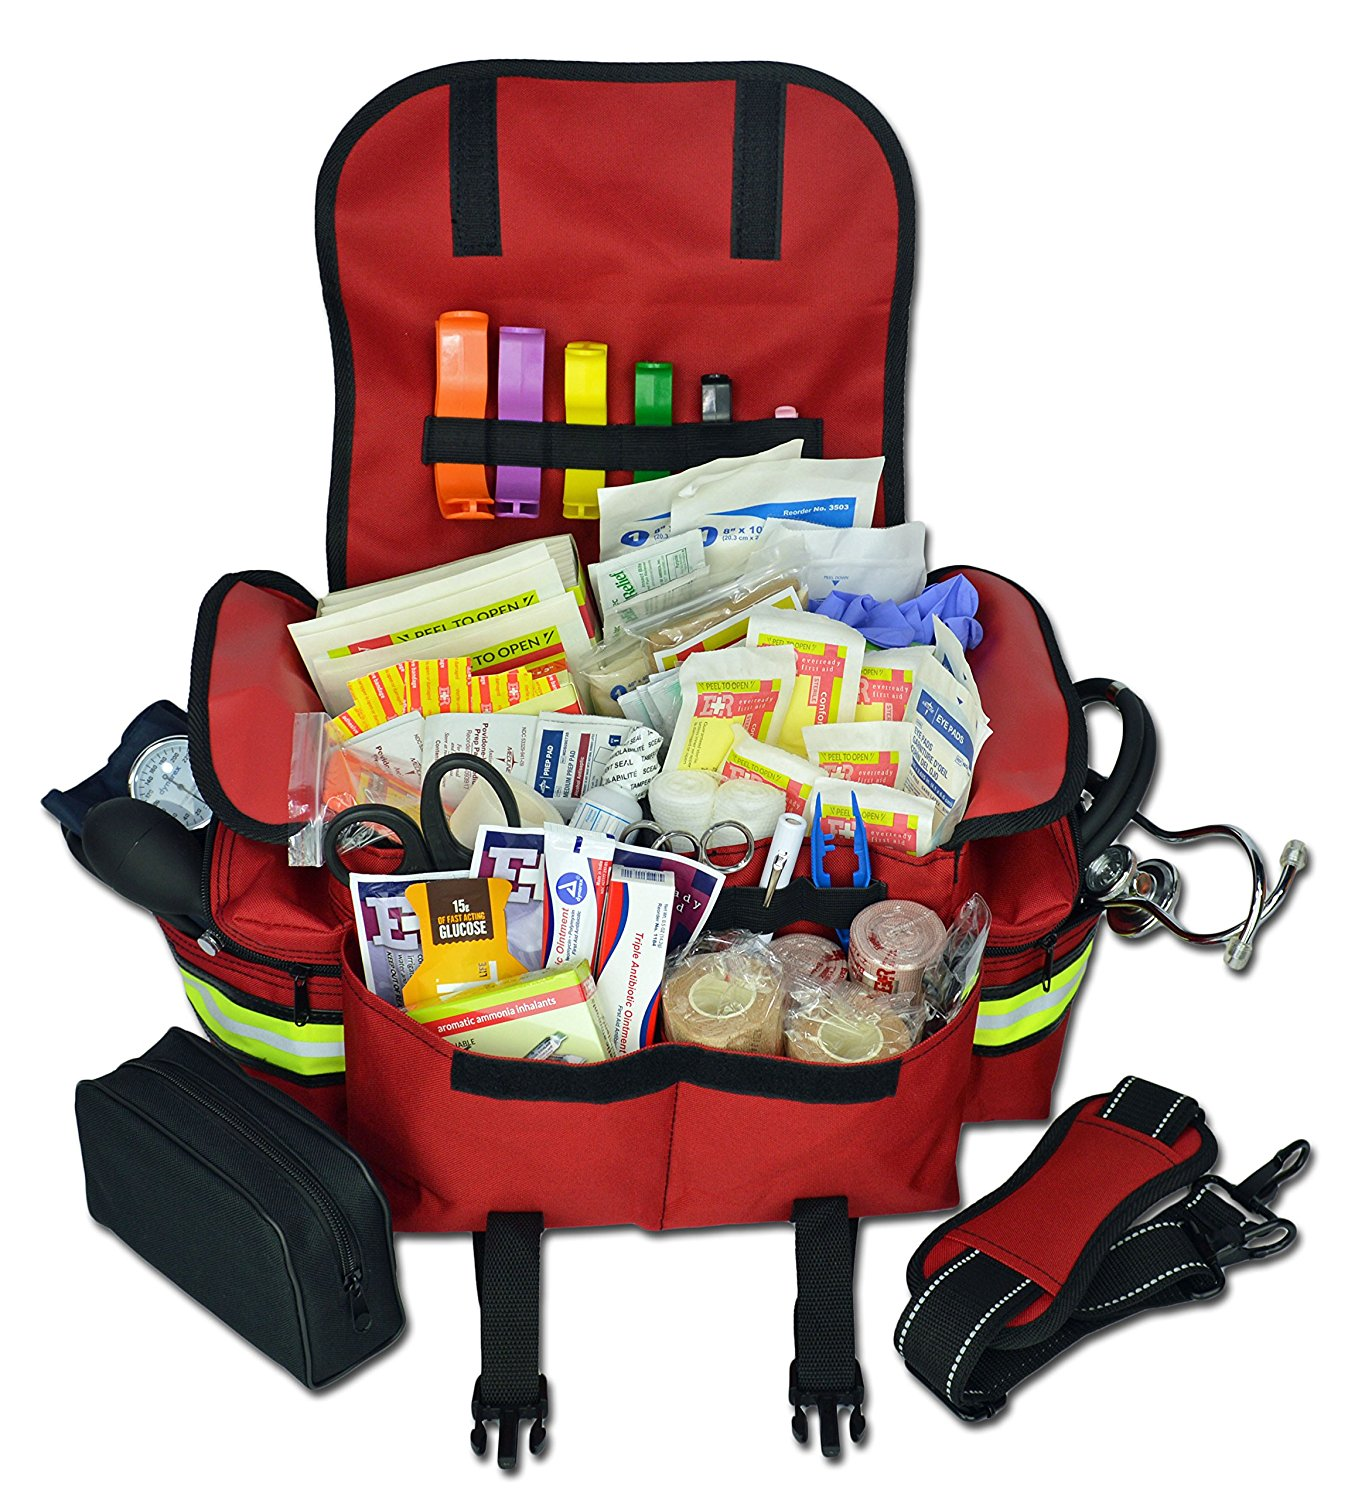 first aid kit for EMS or EMT